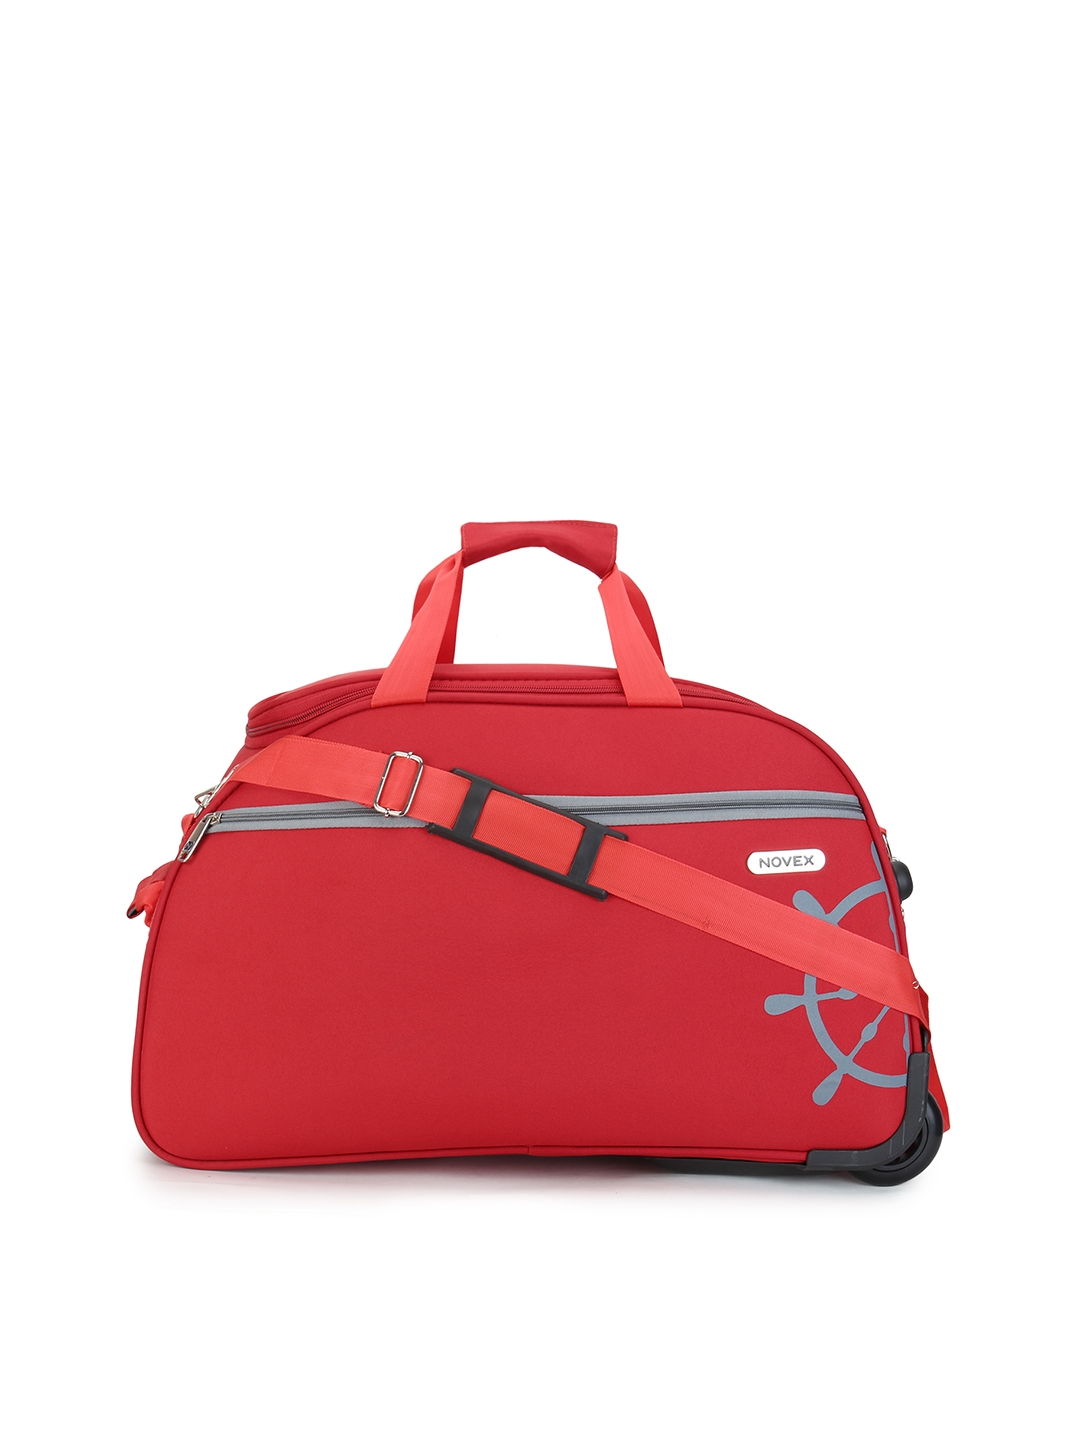 NOVEX Unisex Red Solid Travel Duffle Bag